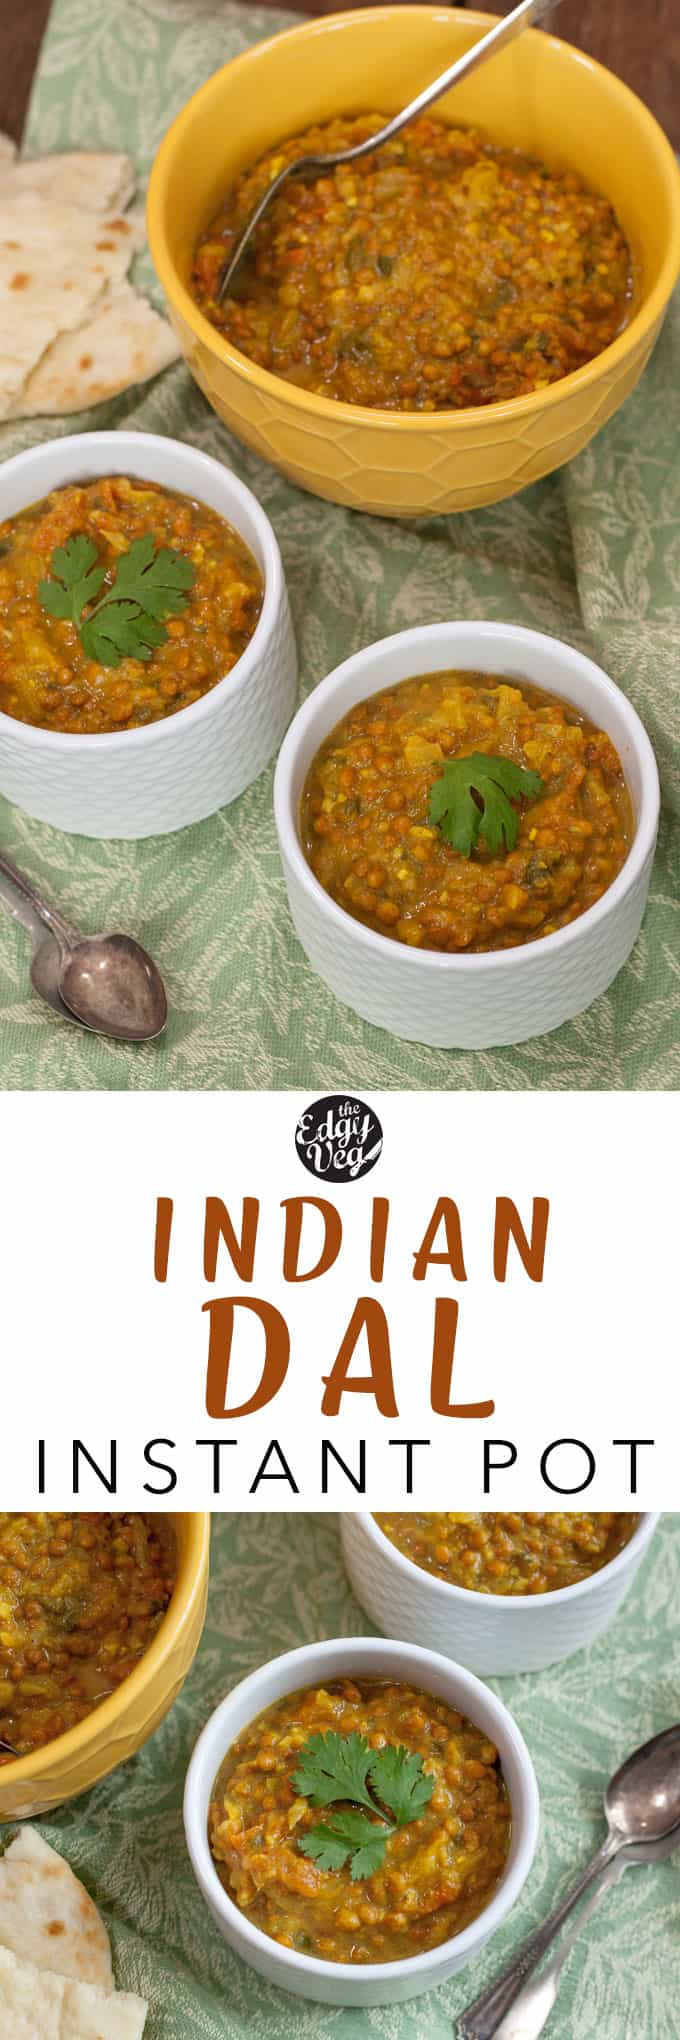 Instant pot Indian Dal vegan